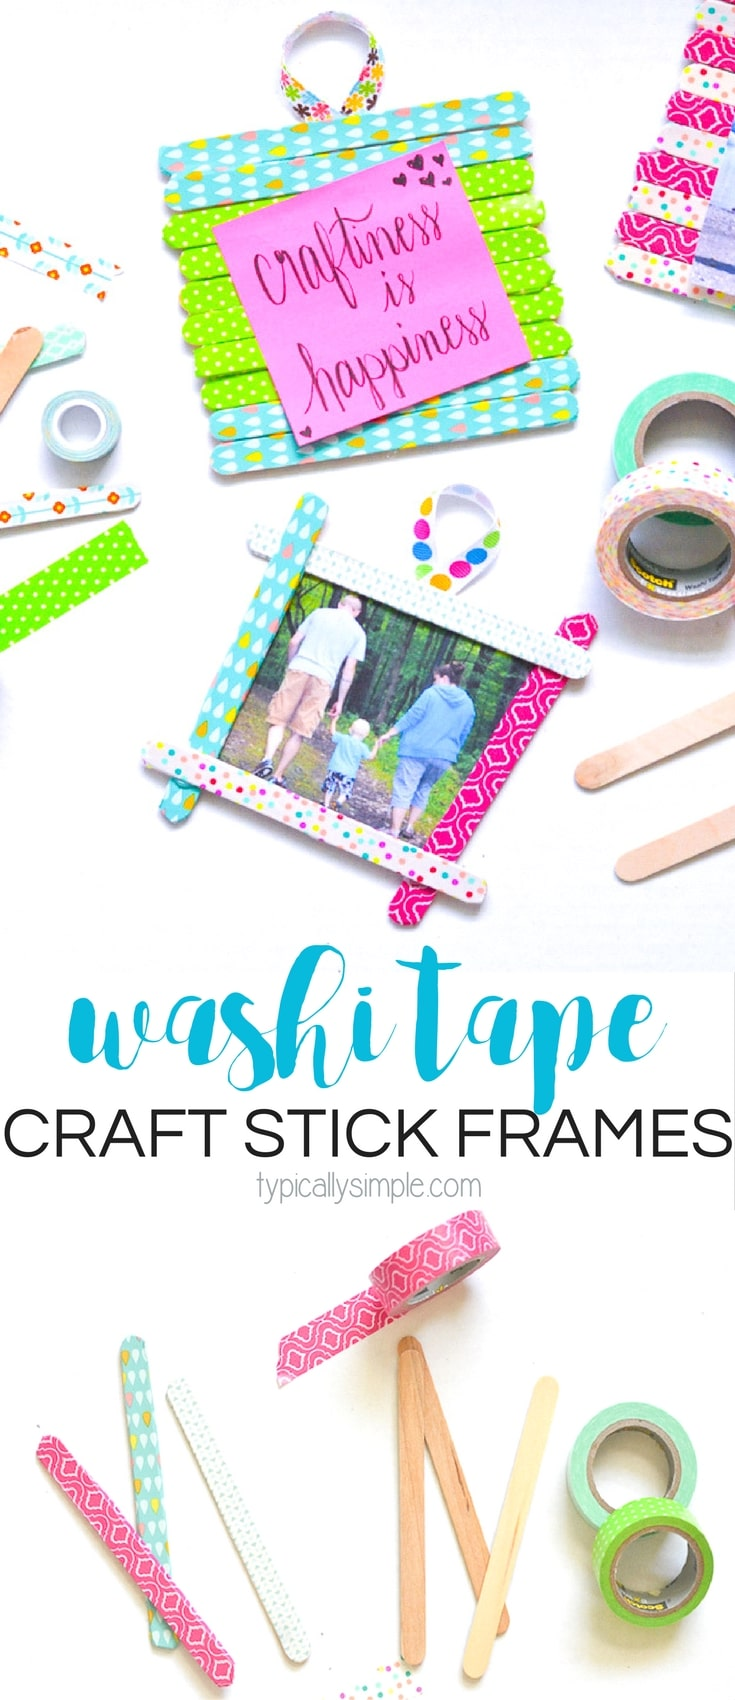 These washi tape craft stick frames are a fun craft project for both kids and adults alike! A great rainy day craft or make them for as a thoughtful, homemade Mother's Day gift!